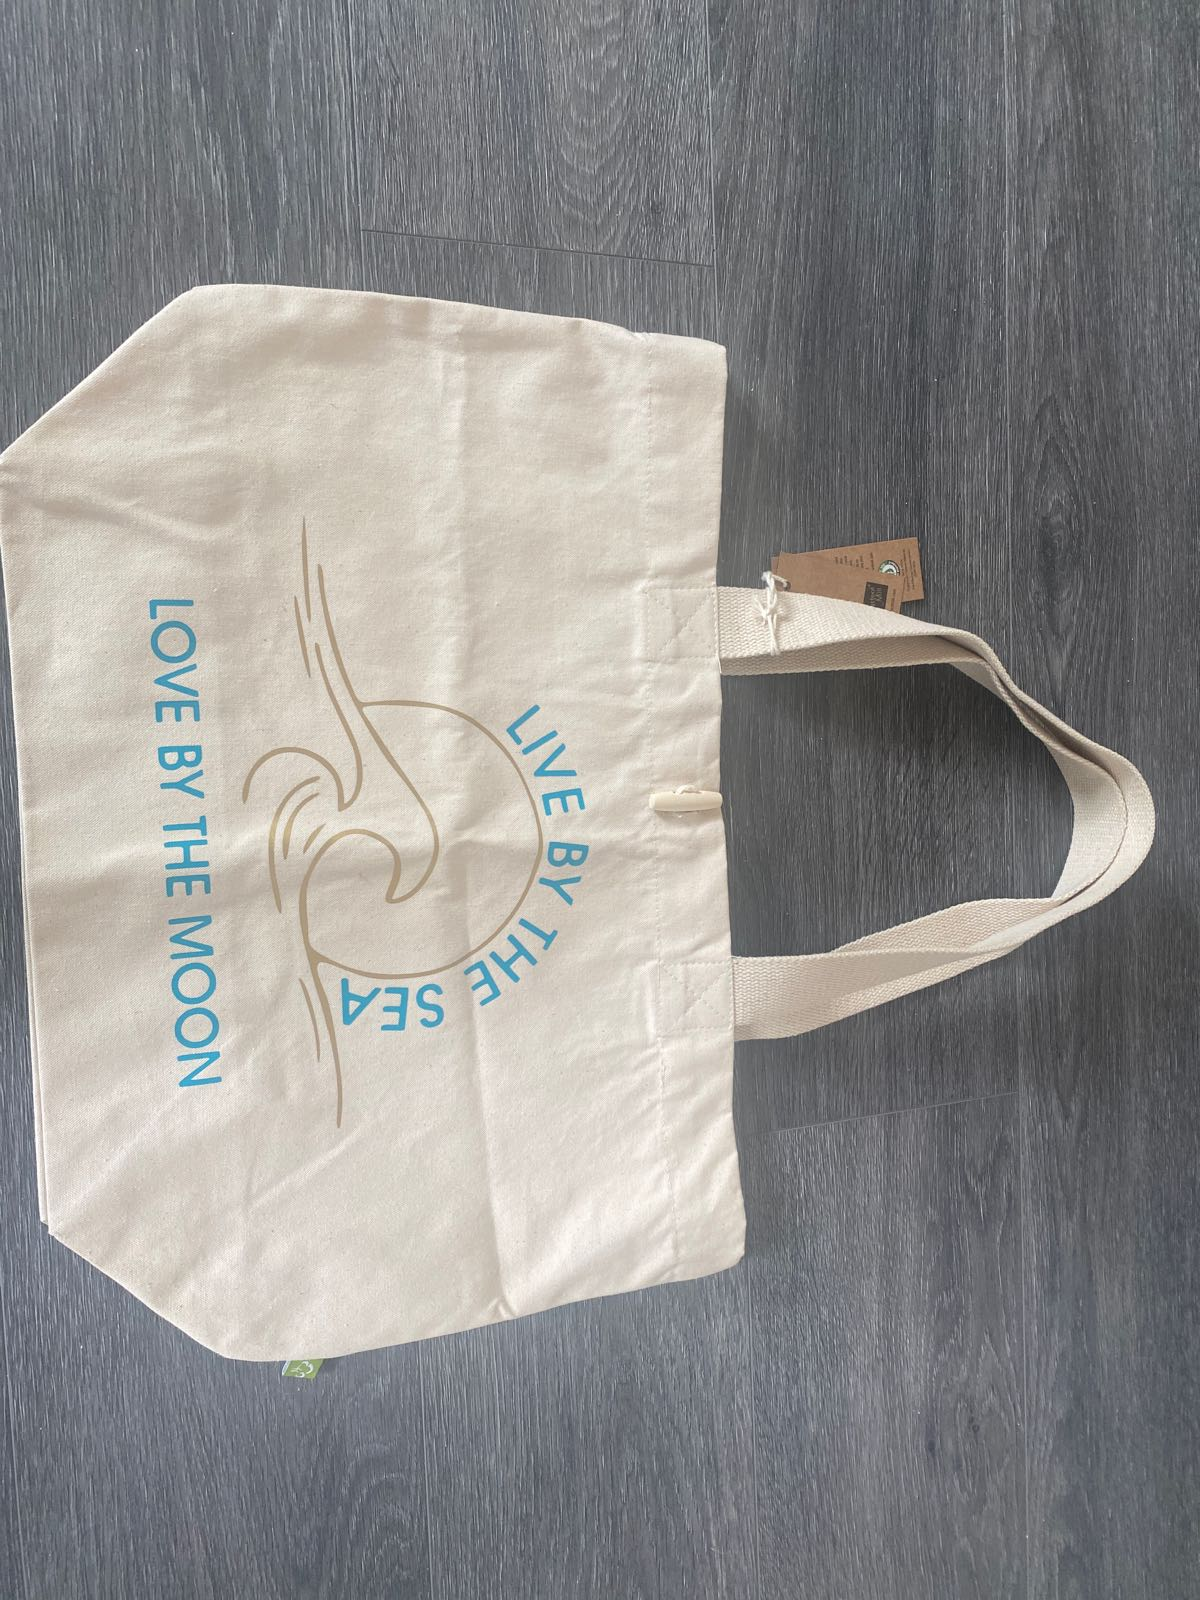 Well-being Tote Bag